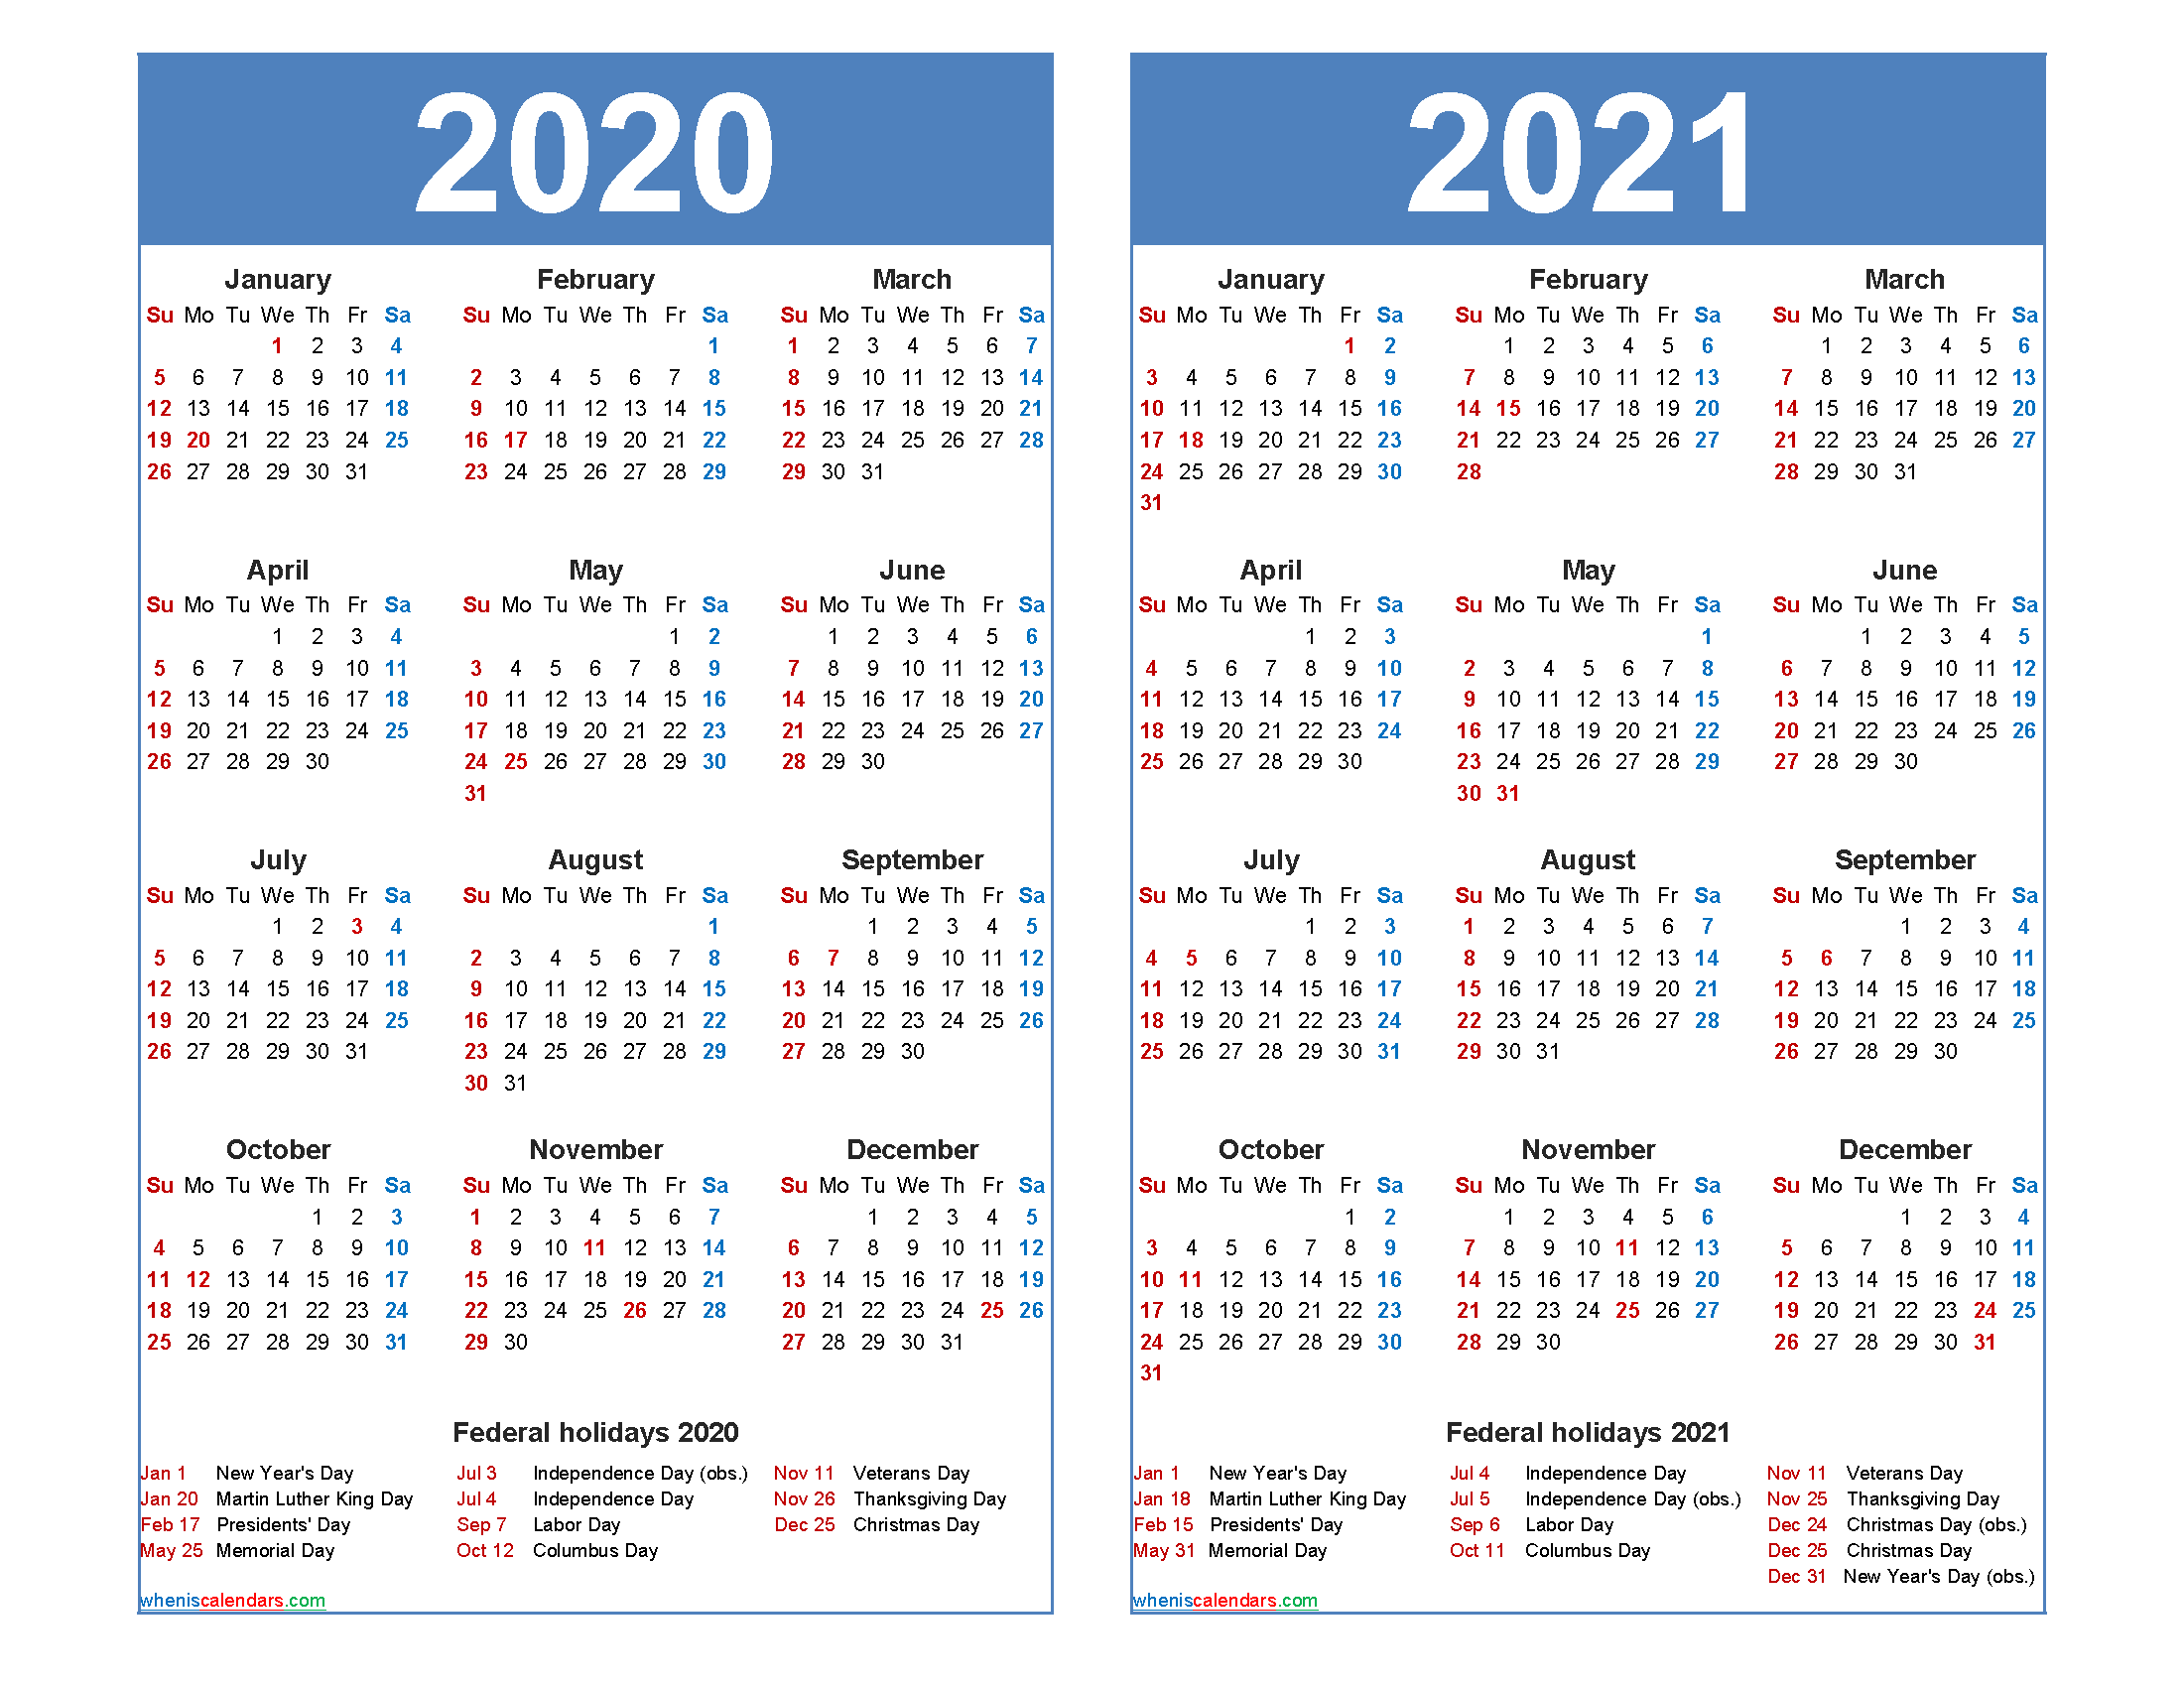 Free 2020 2021 Calendar Printable with Holidays - Free ...